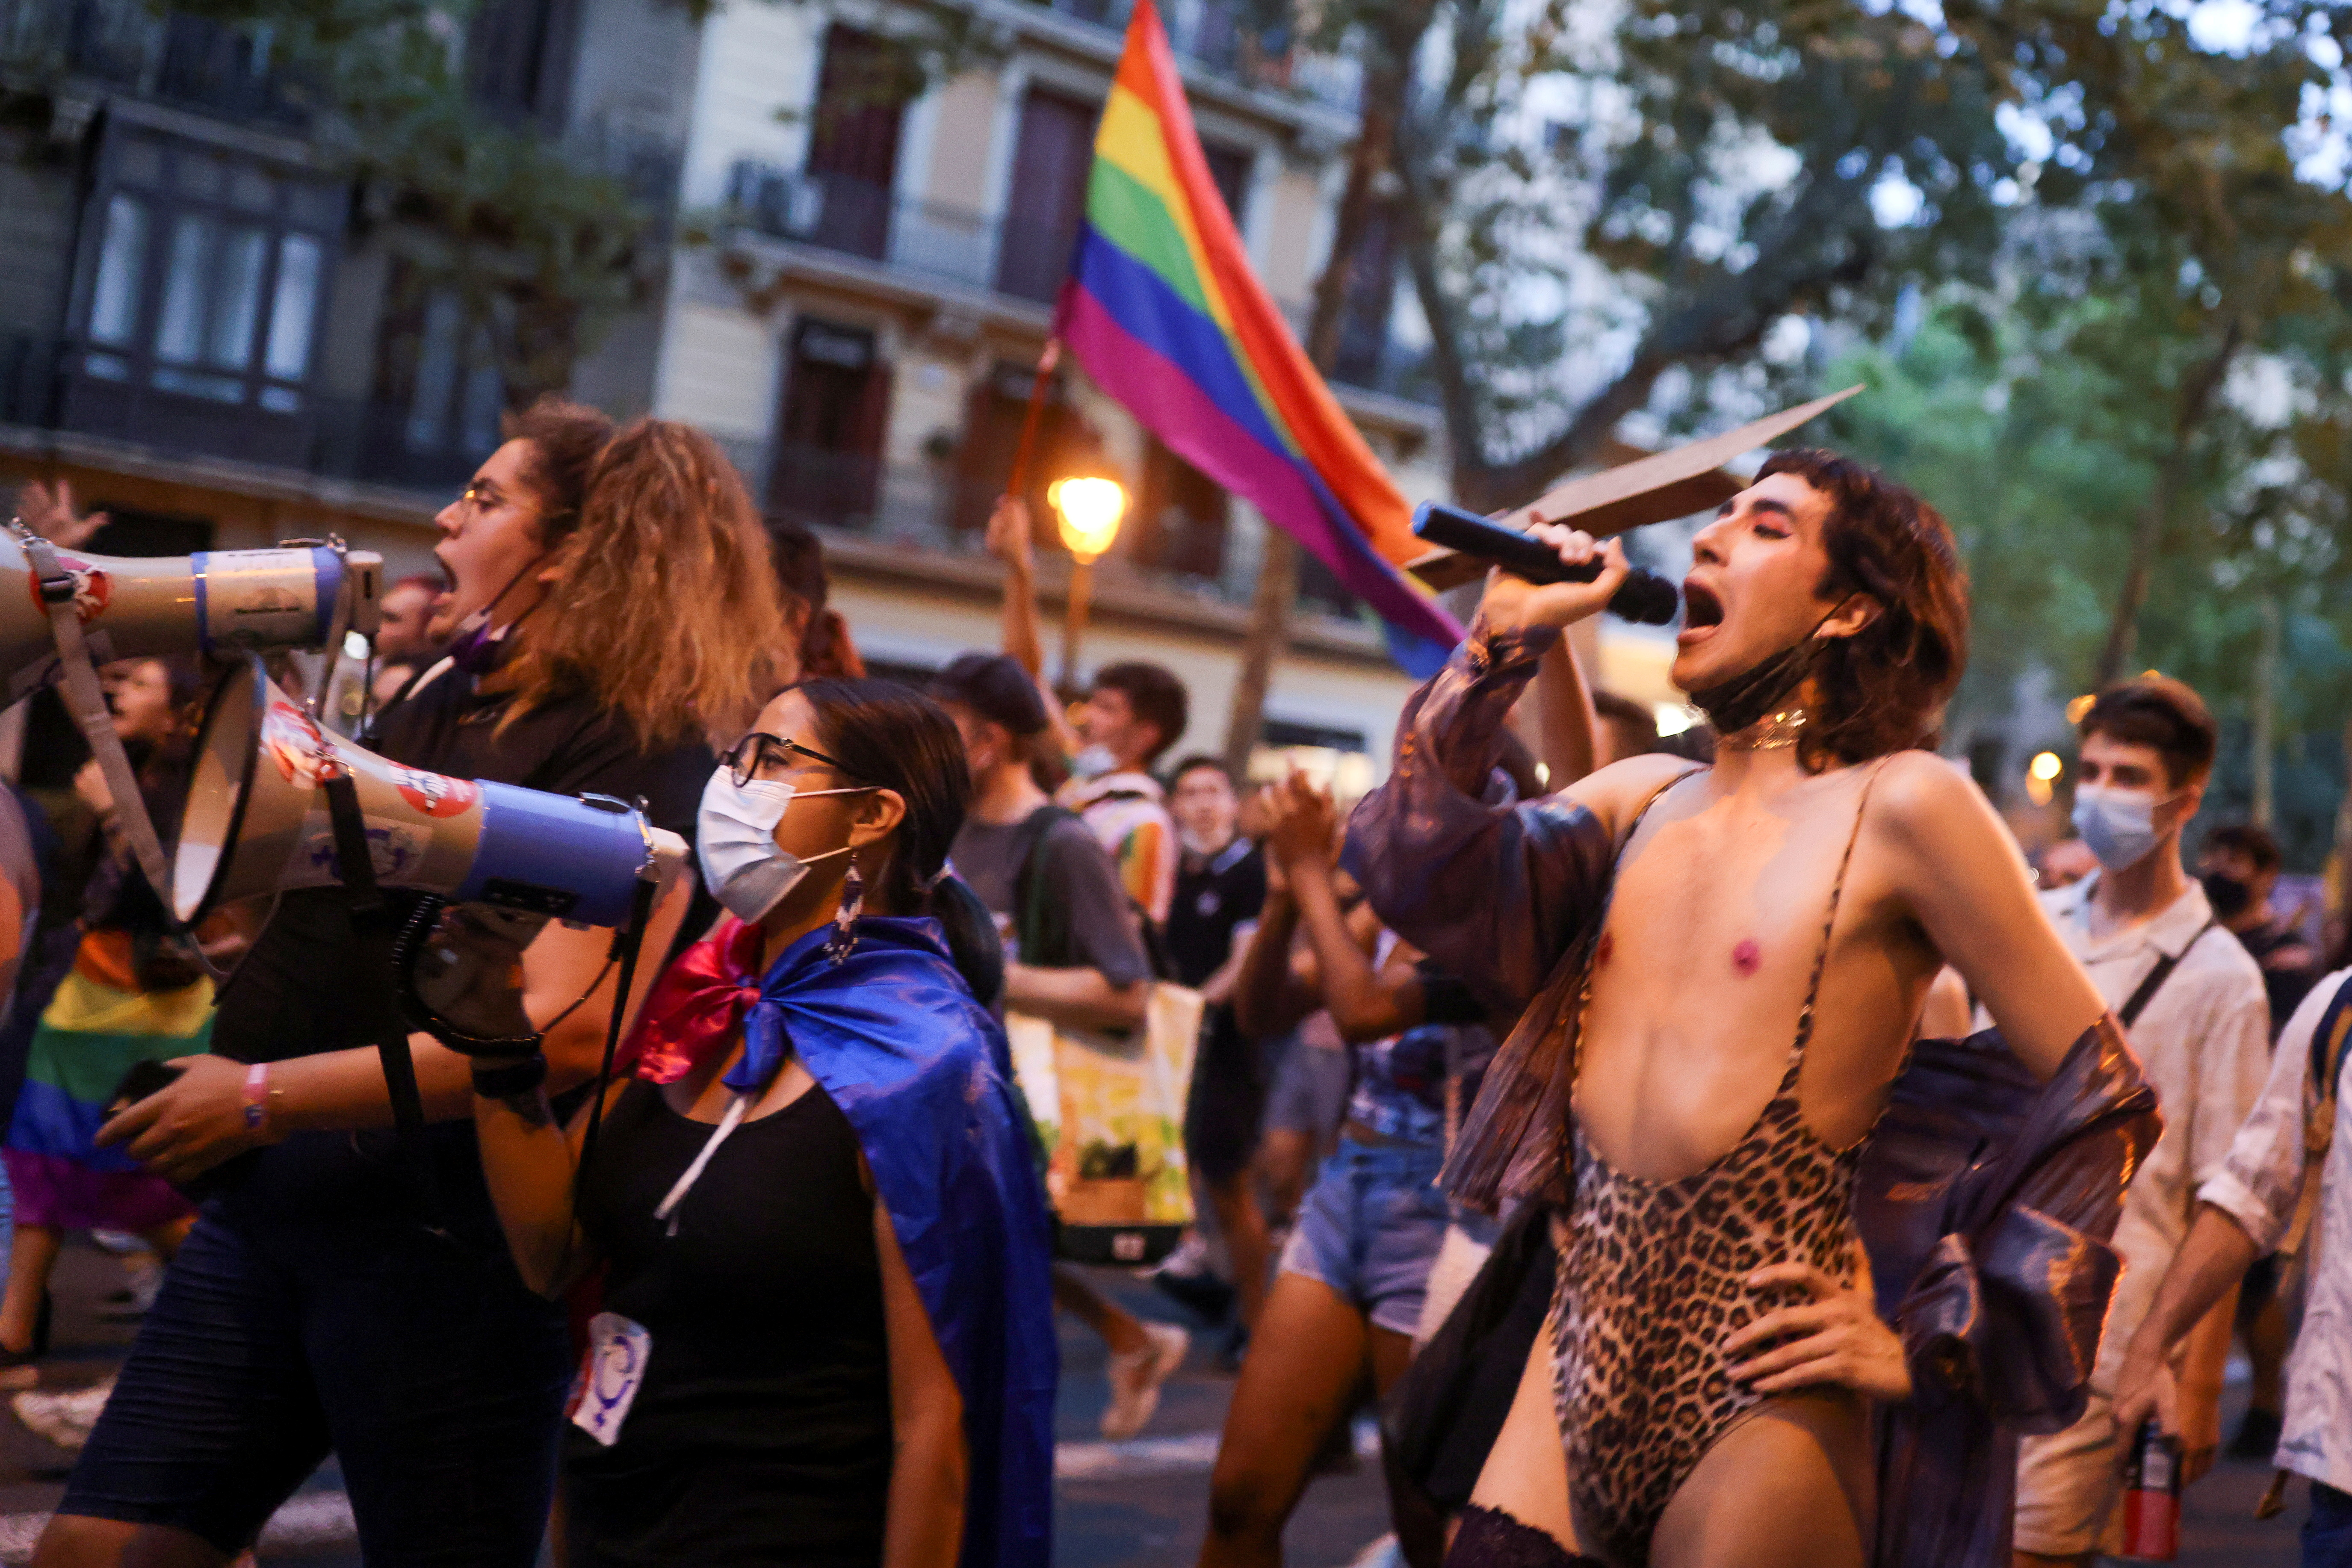 LGBT+ activists protest over the death of Samuel Luiz, who was attacked outside a club in A Coruna, in Barcelona, Spain July 5, 2021. REUTERS/Nacho Doce